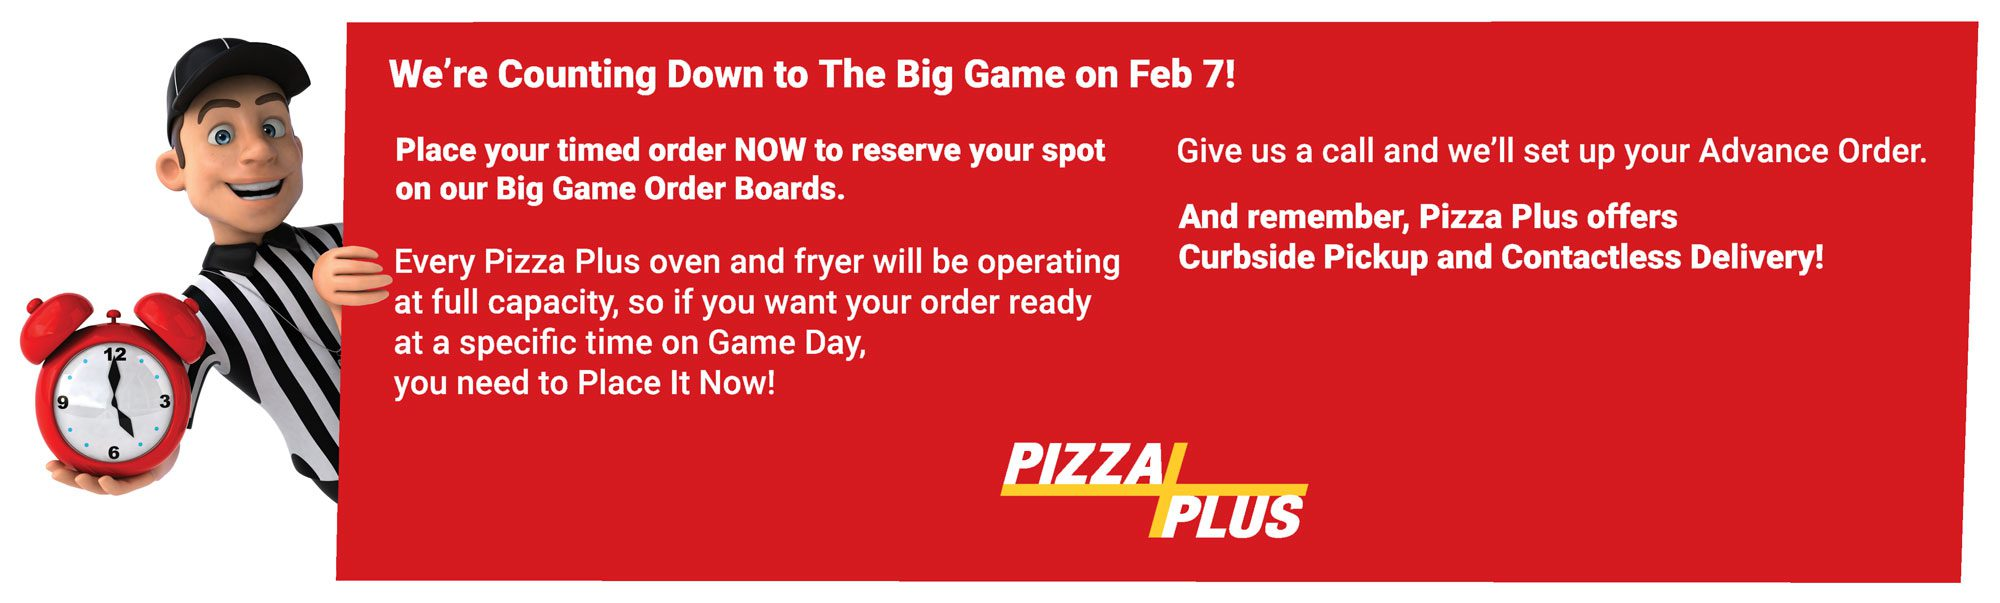 Order Pizza Plus for your Super Bowl party now!